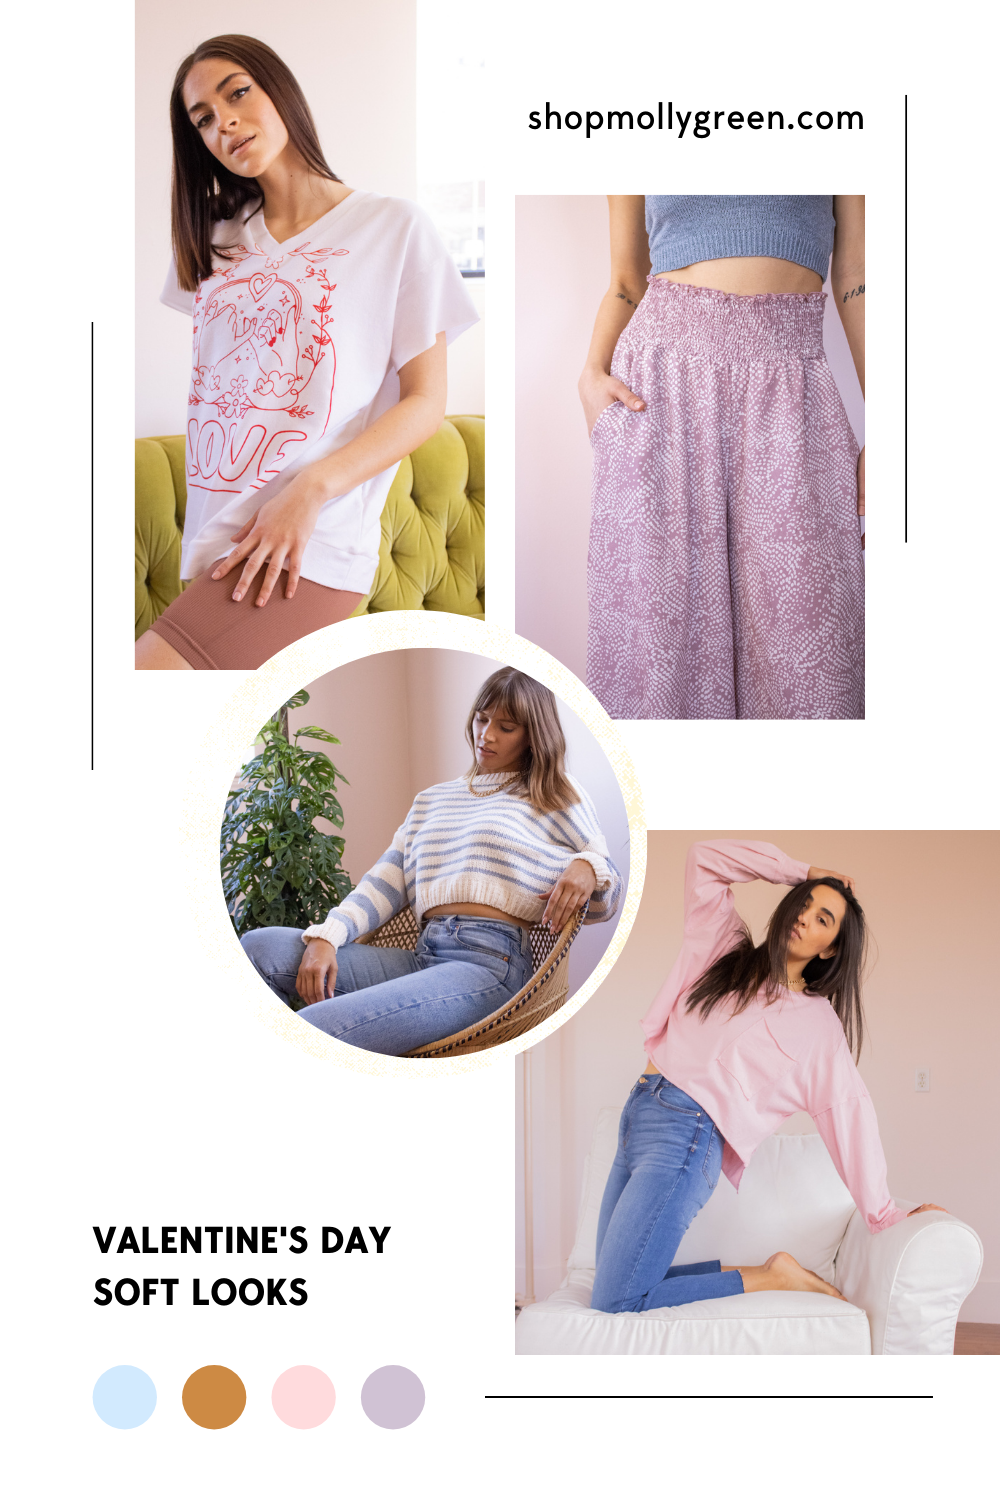 soft looks for valentine's day